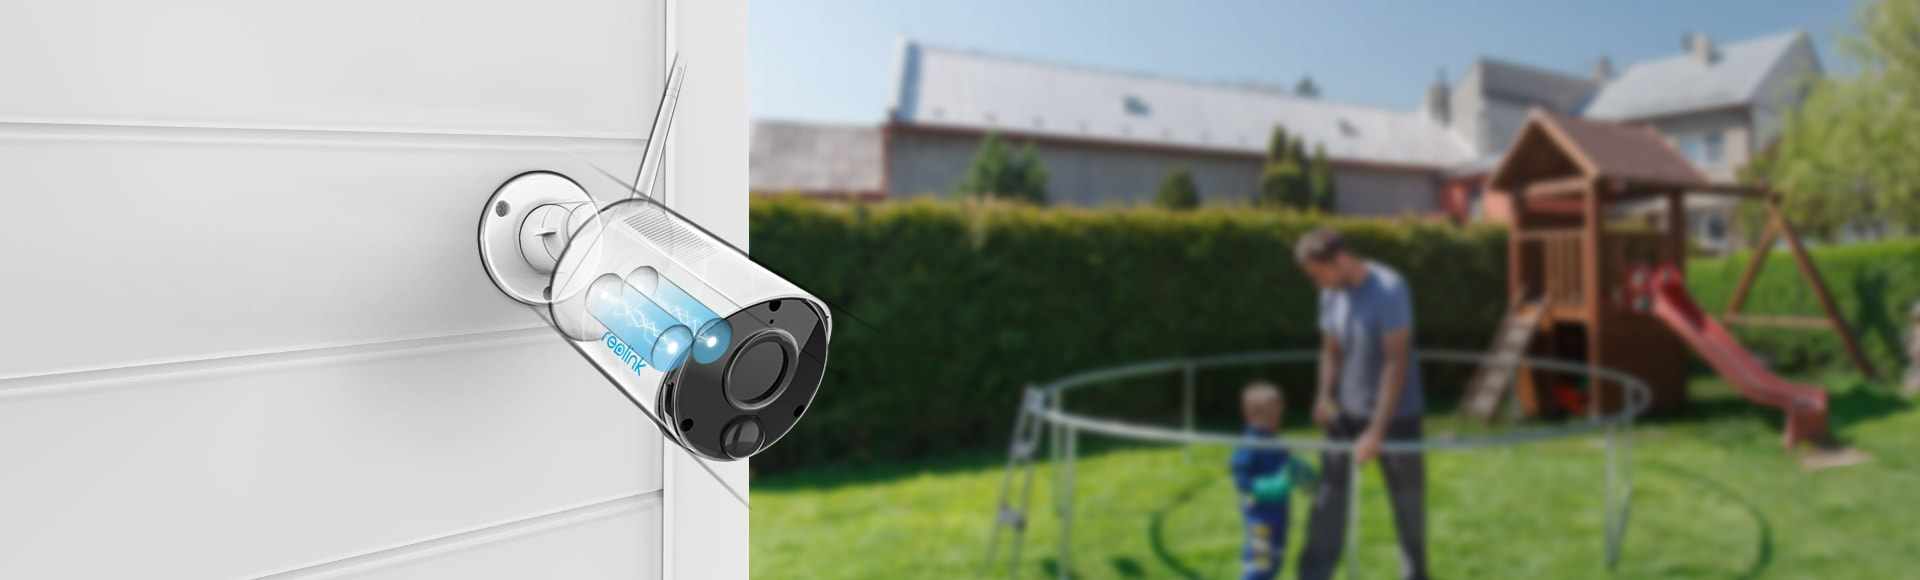 Argus Eco Wire-Free Security Camera with Rechargeable Battery